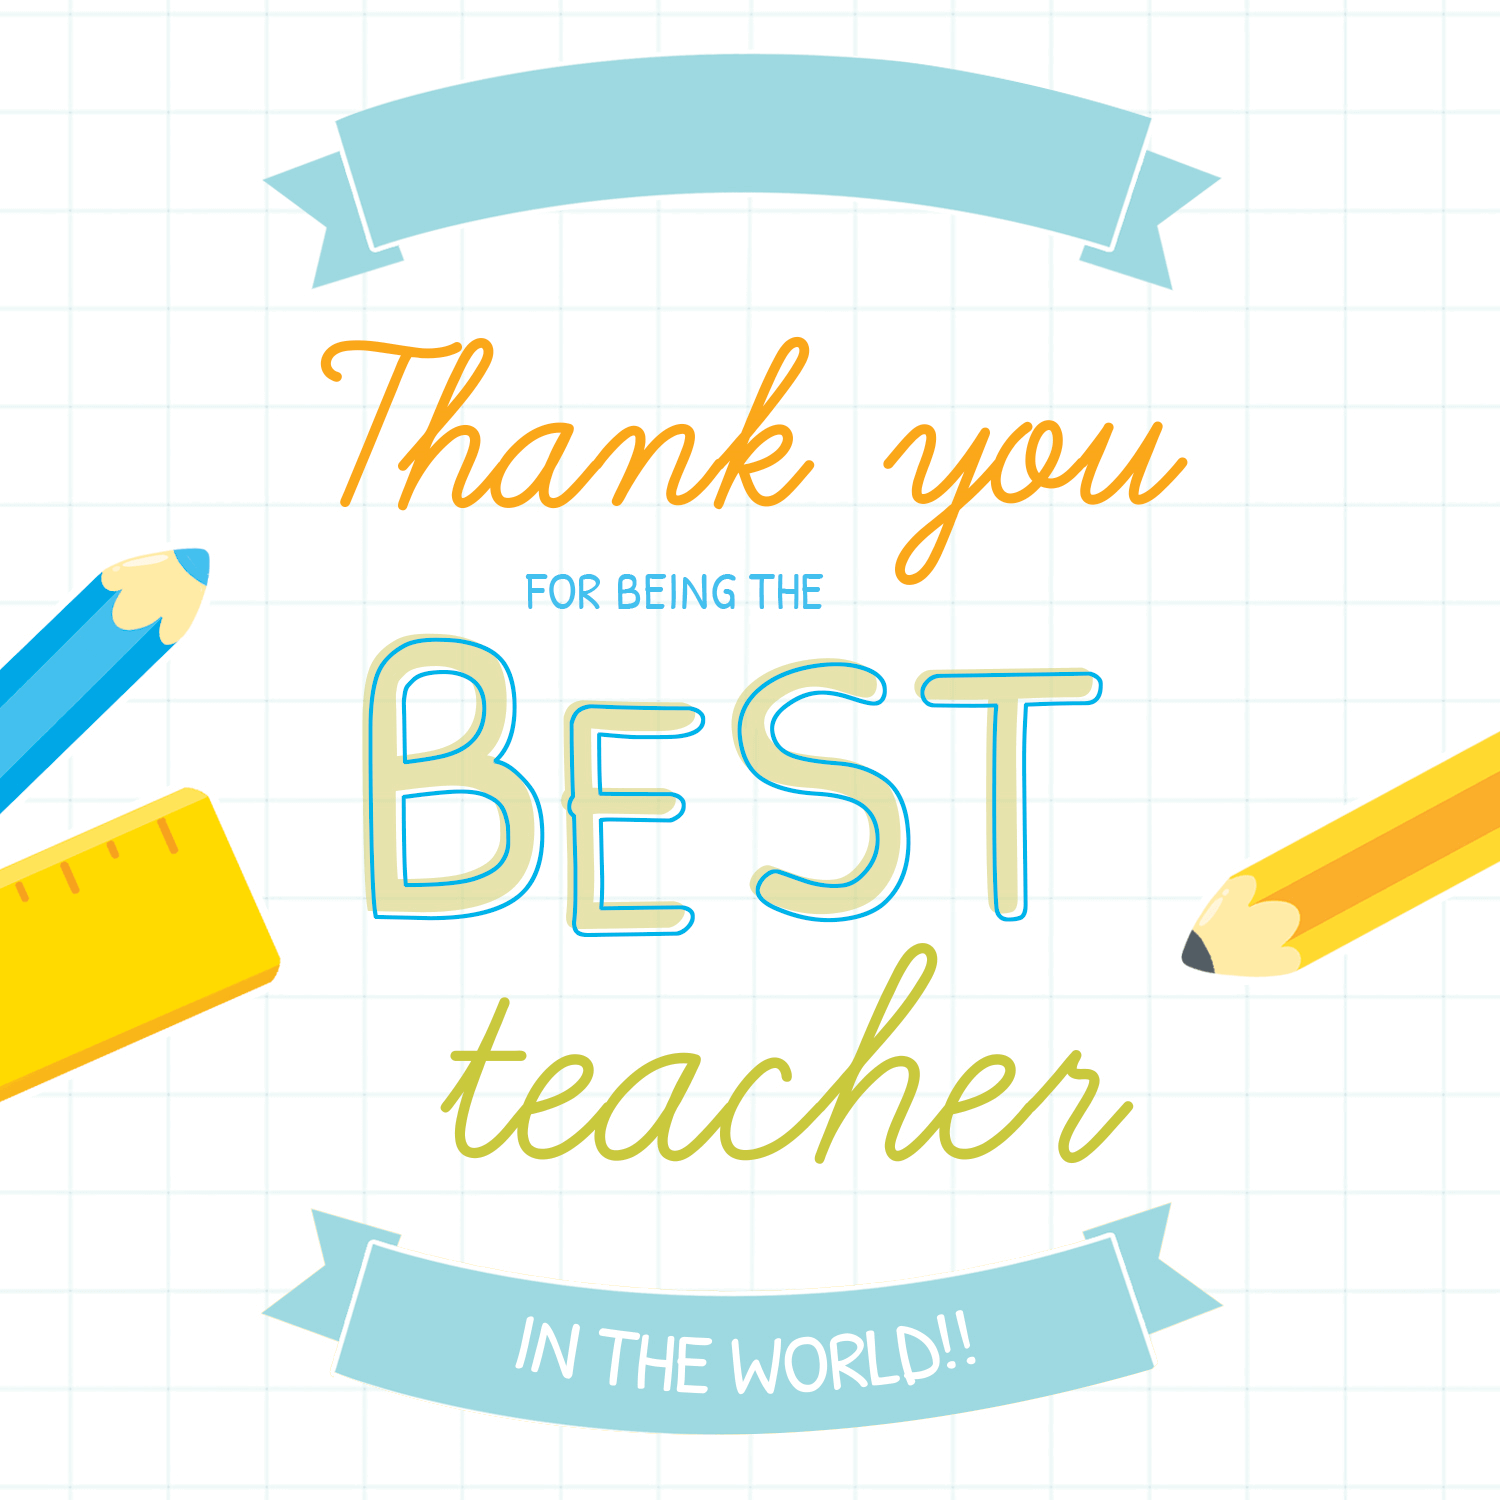 For Being the Best Teacher.